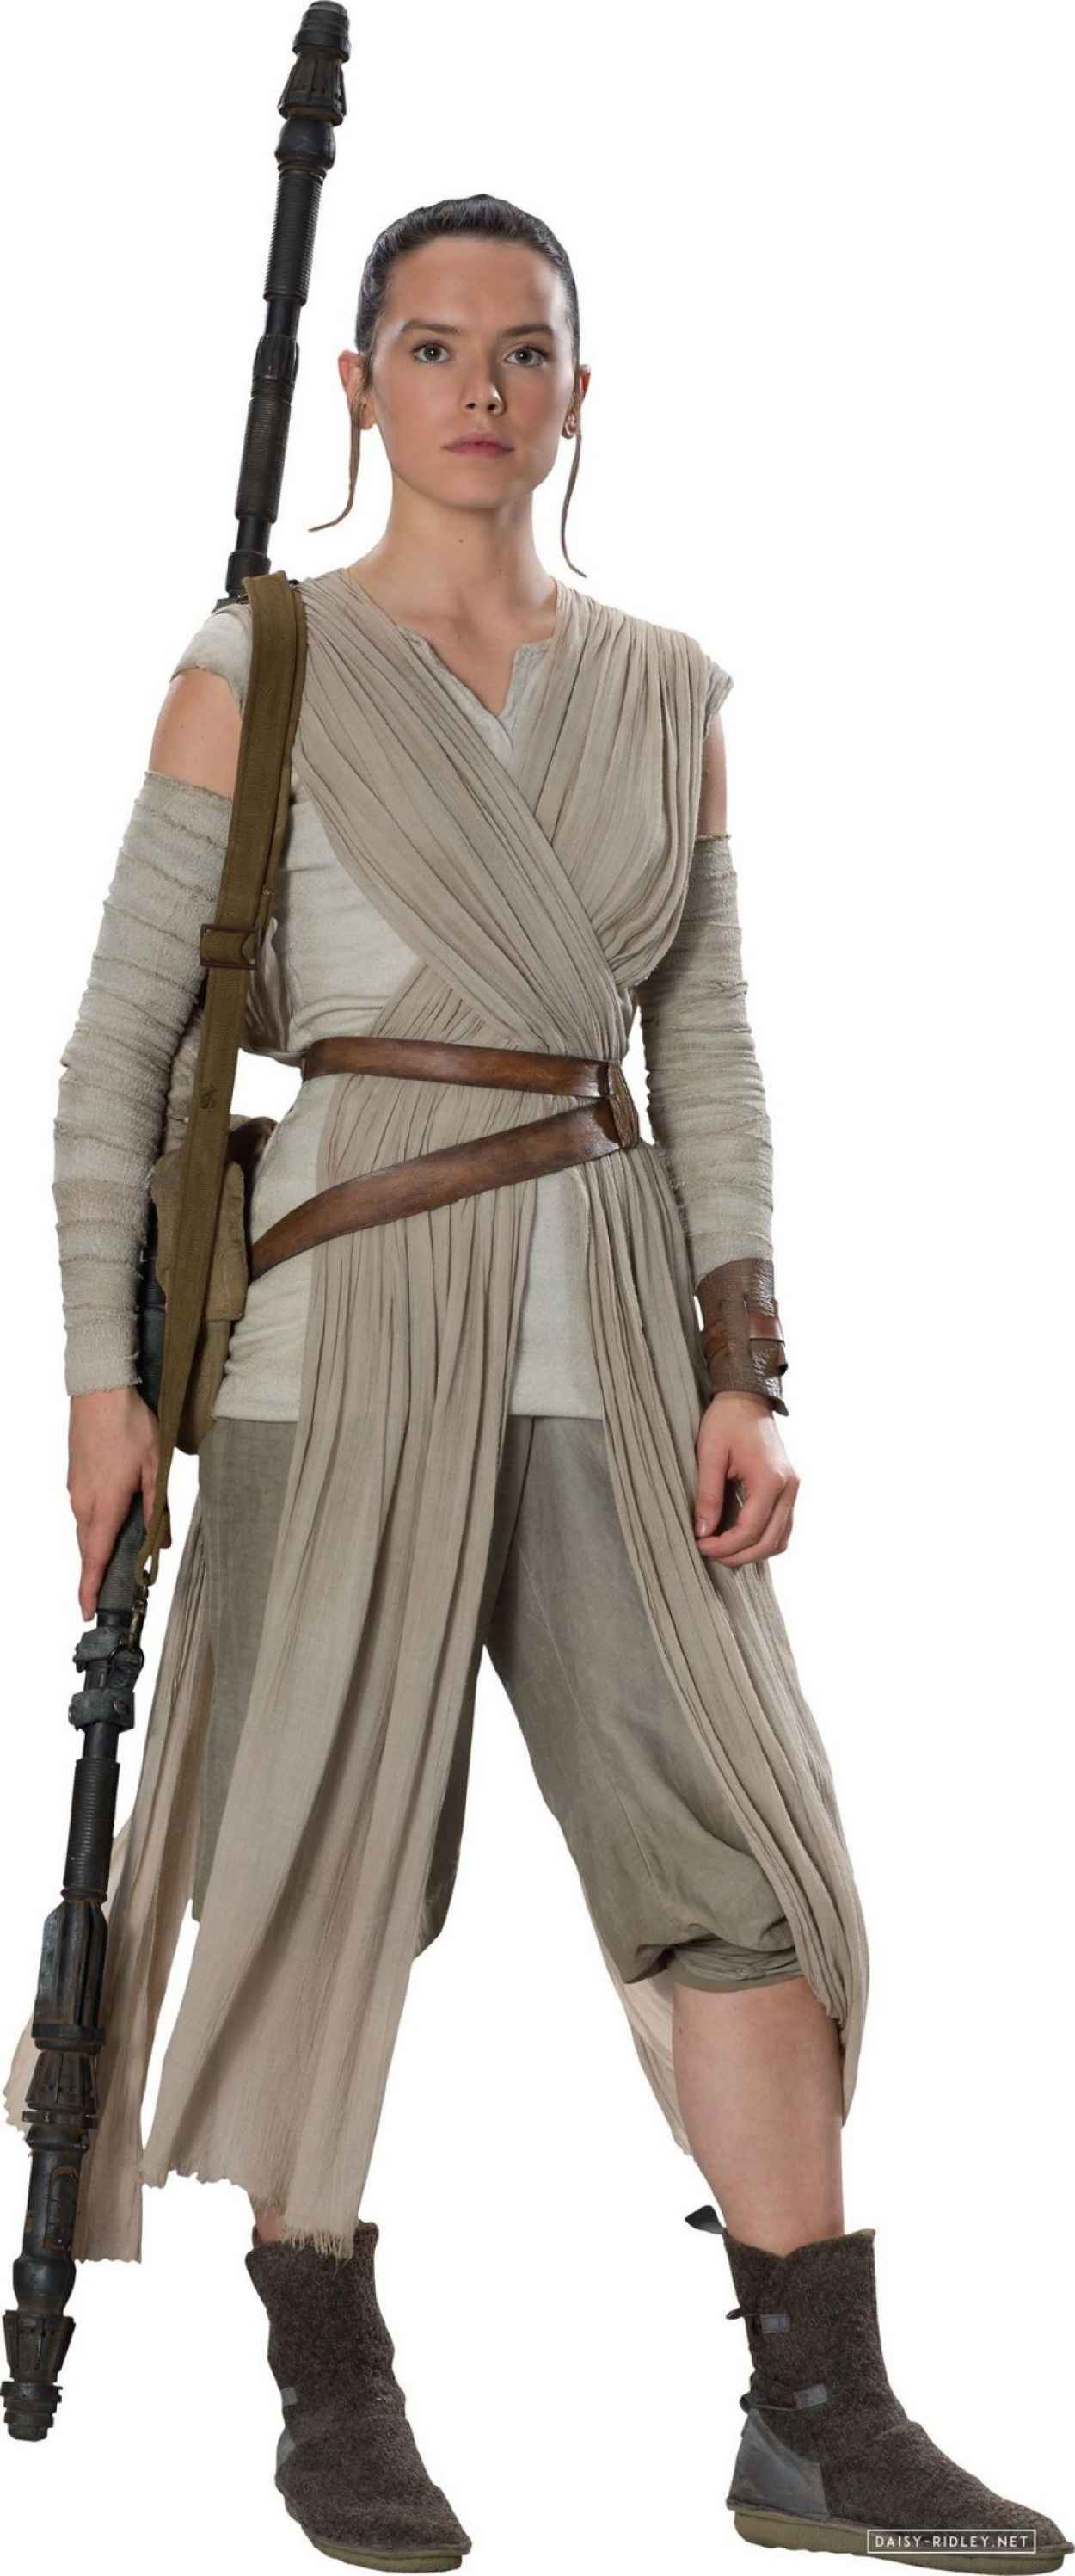 Daisy Ridley - Star Wars: The Force Awakens Poster and Photos (2015)-2